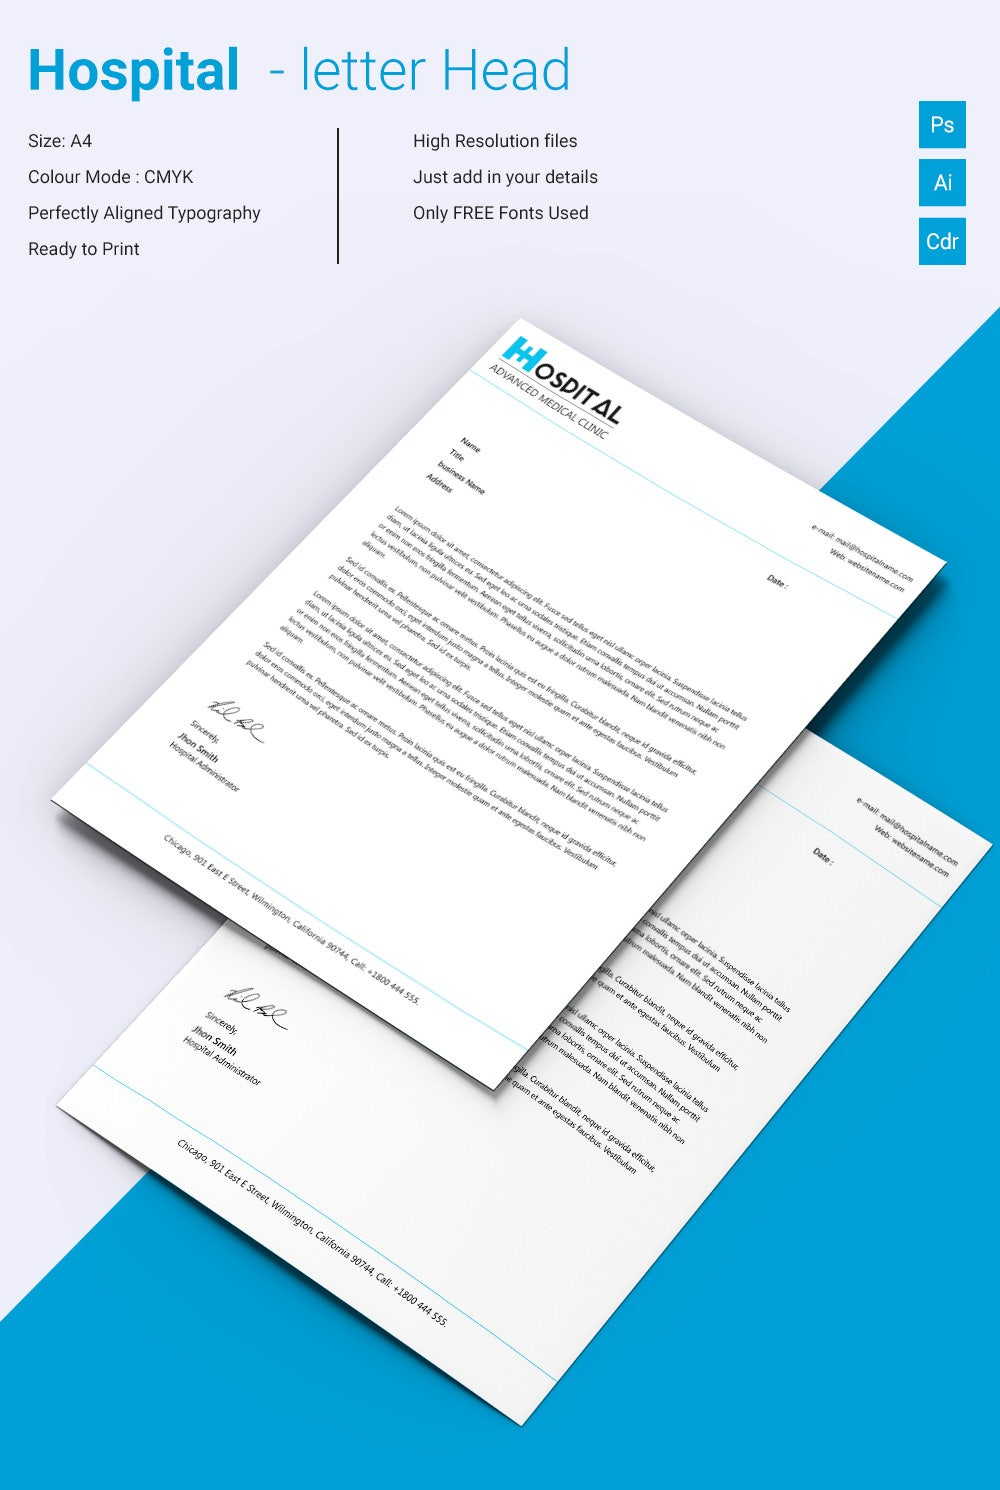 Fabulous Hospital Letterhead Template Download  Best Free Letterhead Templates